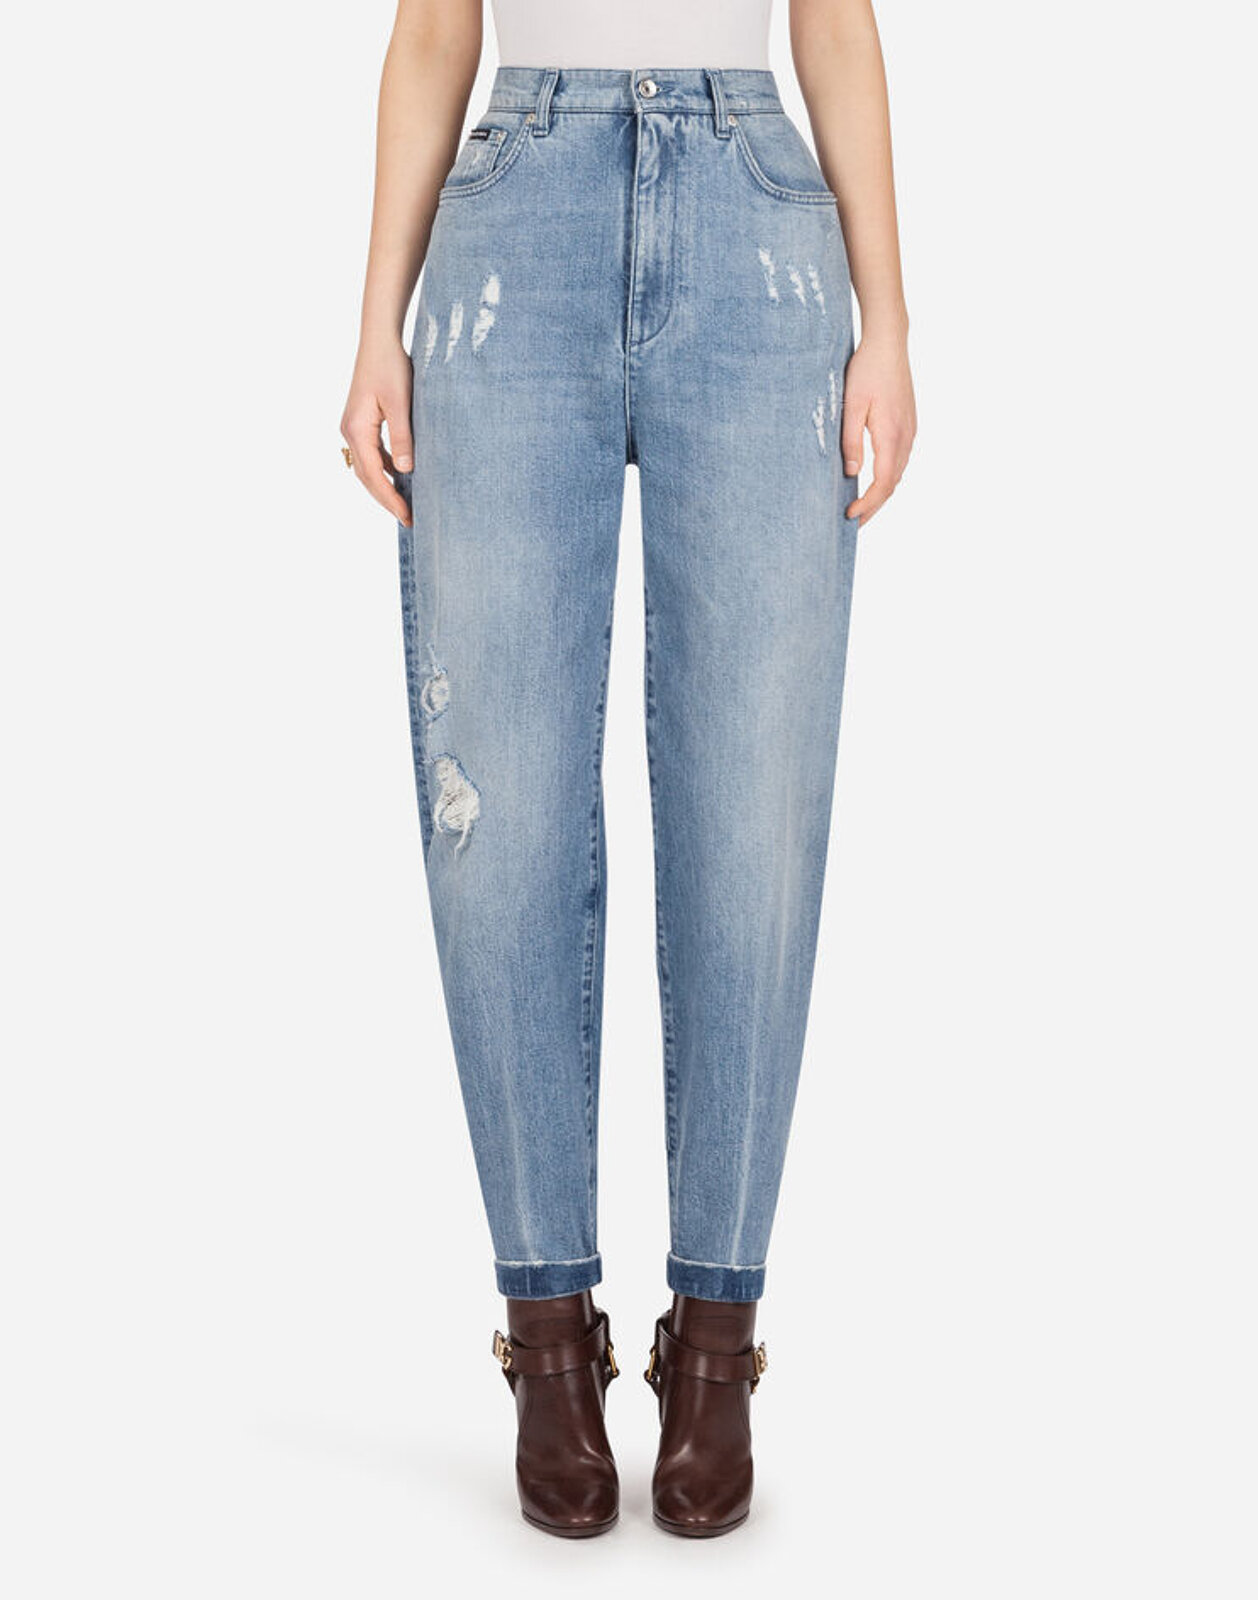 Jeans Boyfriend In Denim Light Blue Con Rotture - Dolce & Gabbana